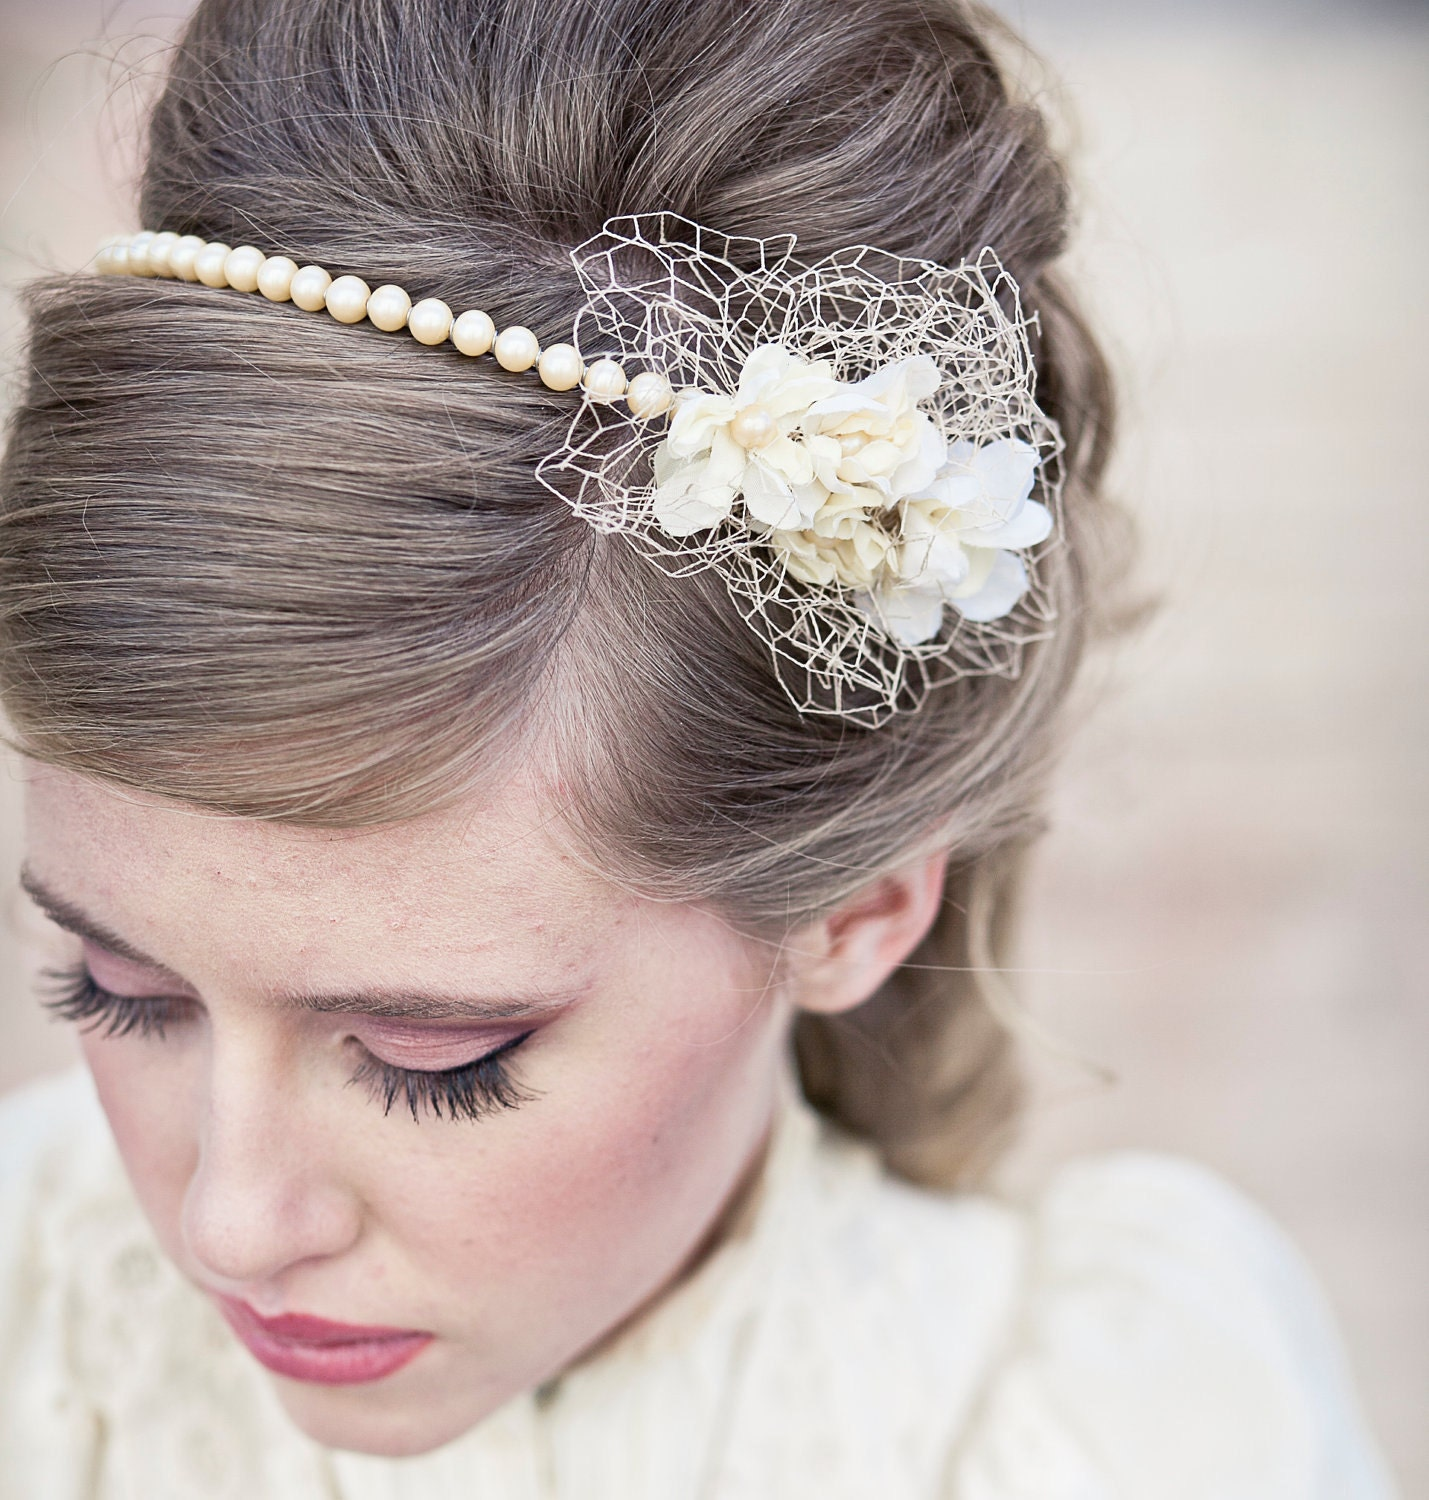 Vintage Wedding Headpieces: Wedding Hair Vintage Romance Pearl Headband Or Wedding Tiara